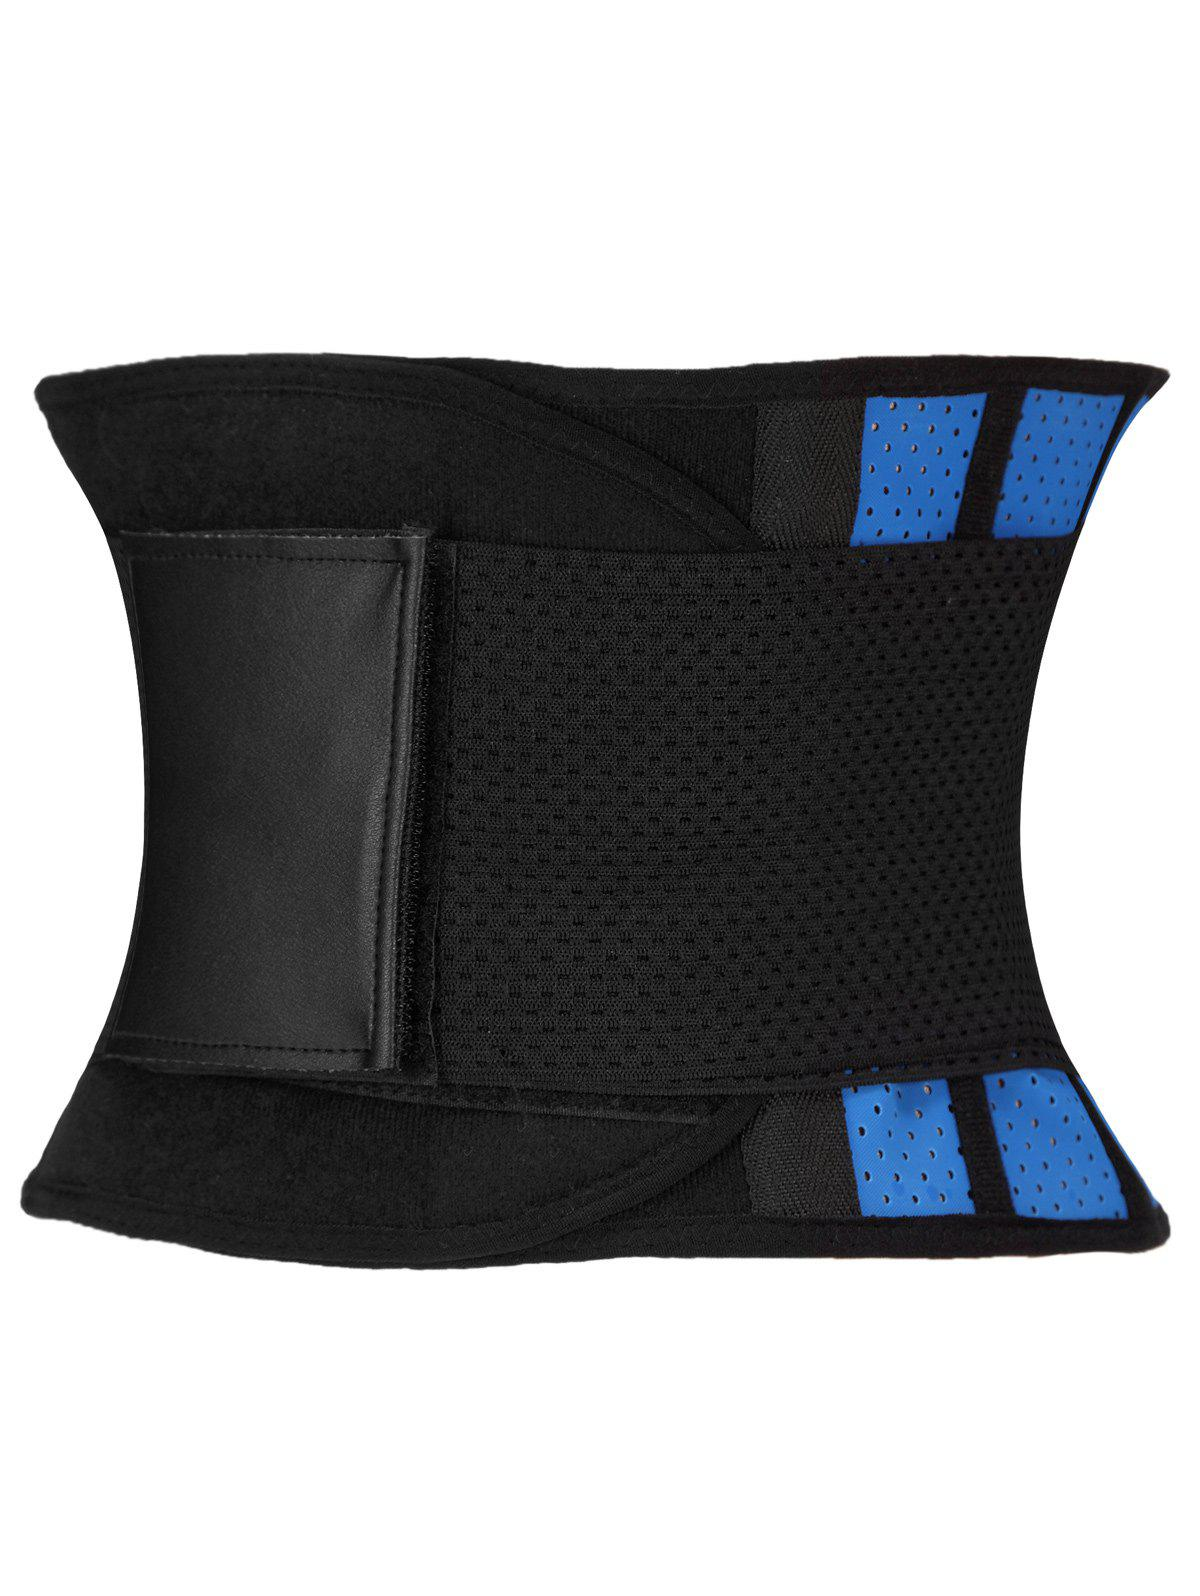 Stretched Waist Slimming Corset - BLUE/BLACK 3XL